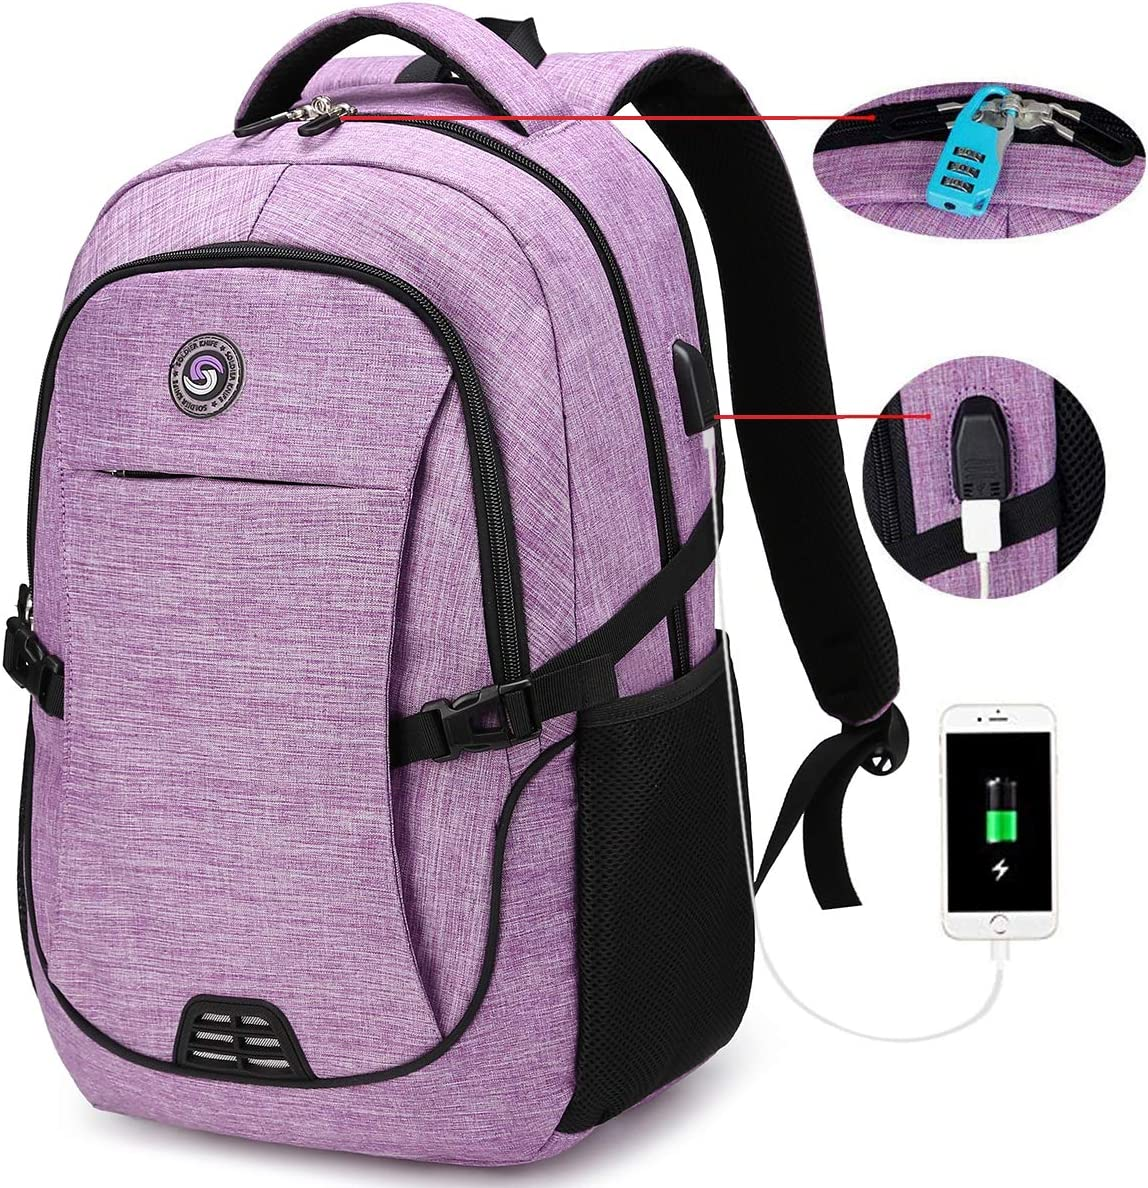 SOLDIERKNIFE Durable Waterproof Anti Theft Laptop Backpack Travel Backpacks Bookbag with usb Charging Port for Women & Men School College Students Backpack Fits 15.6 Inch Laptop Purple